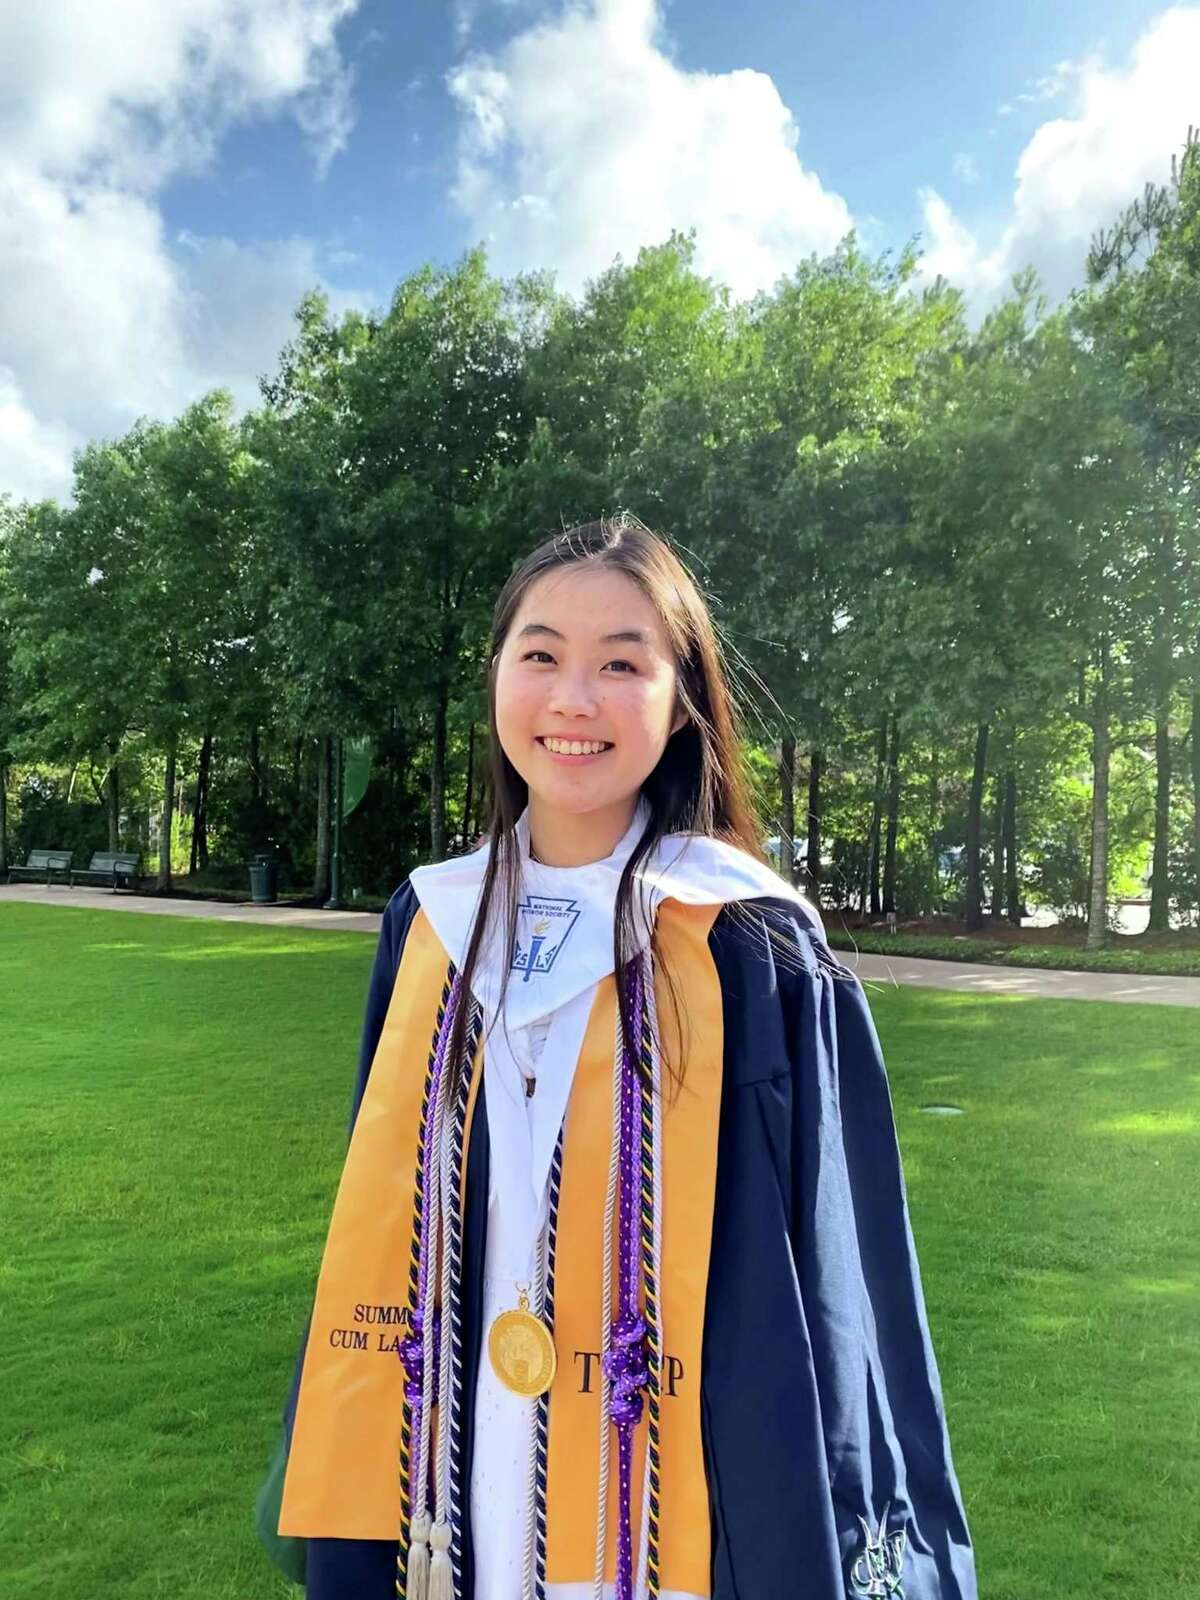 Zoe Wang is a 2021 graduate of The College Park High School and the recipient of the Education Award from the Chinese Professional Club.